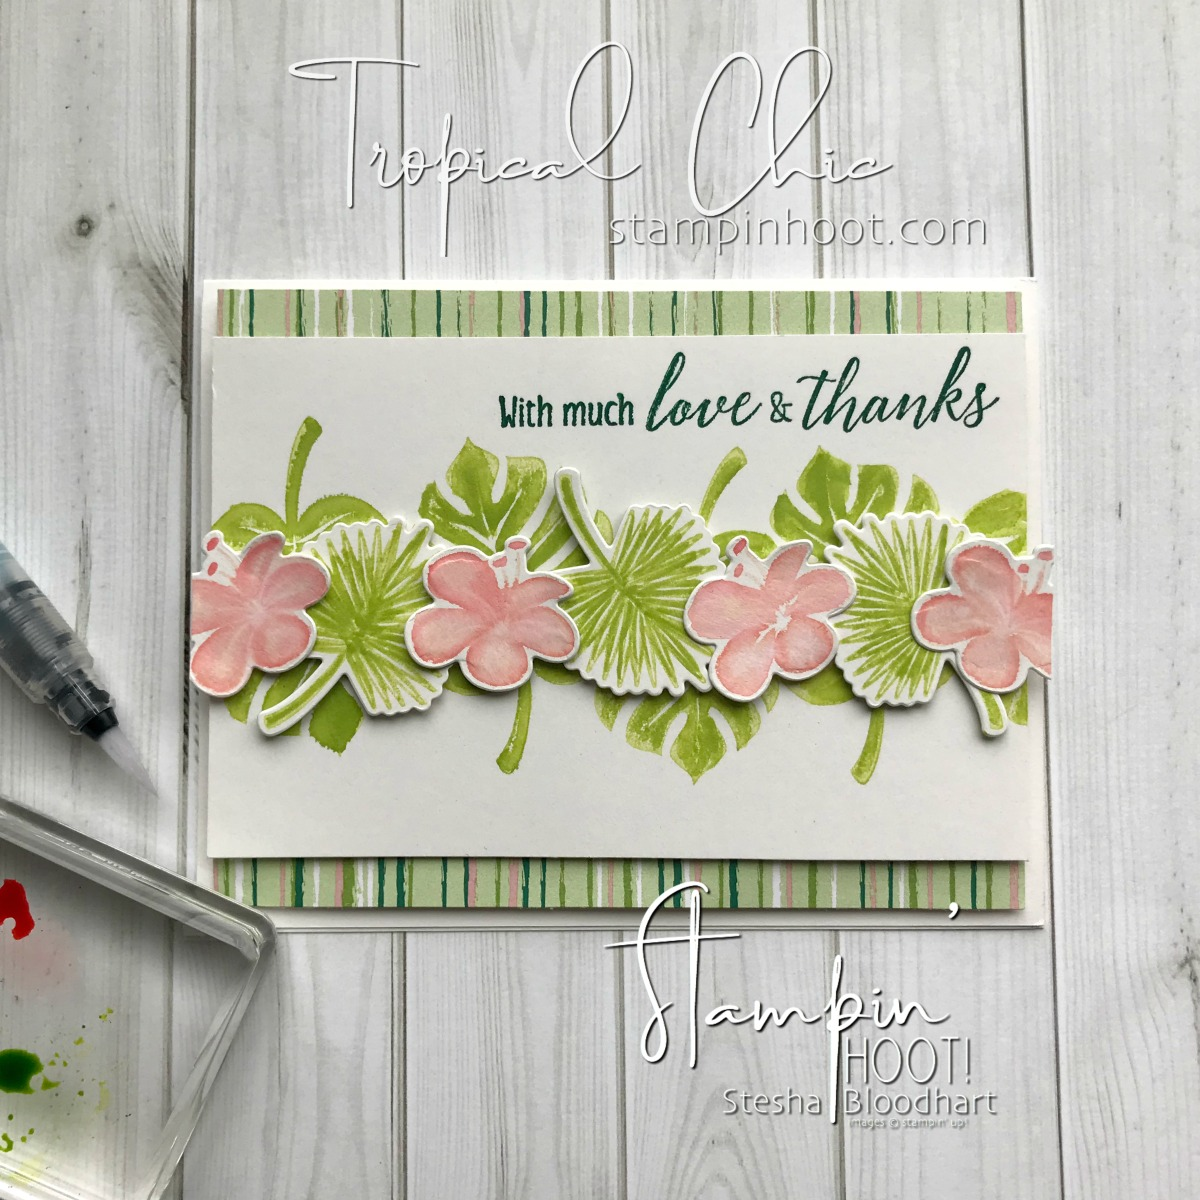 Tropical Chic Bundle by Stampin' Up! for #tgifc170 Repeat After Me Inspiration. Card created by Stesha Bloodhart, Stampin' Hoot! #steshabloodhart #stampinhoot